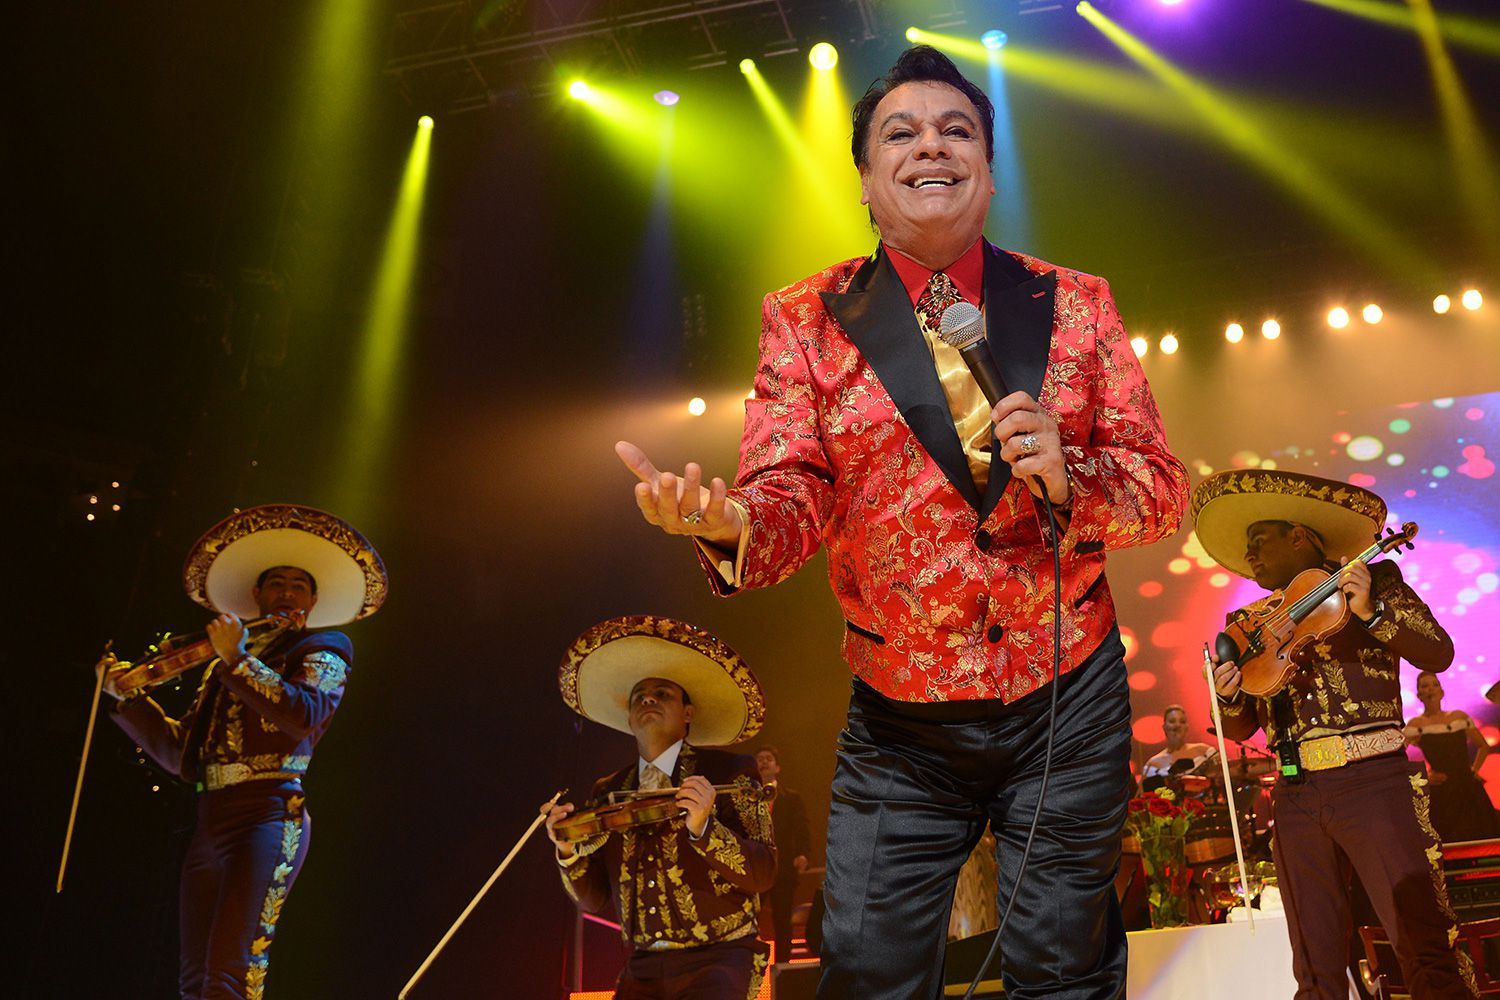 Juan Gabriel: Mexican Singer-Songwriter and Composer